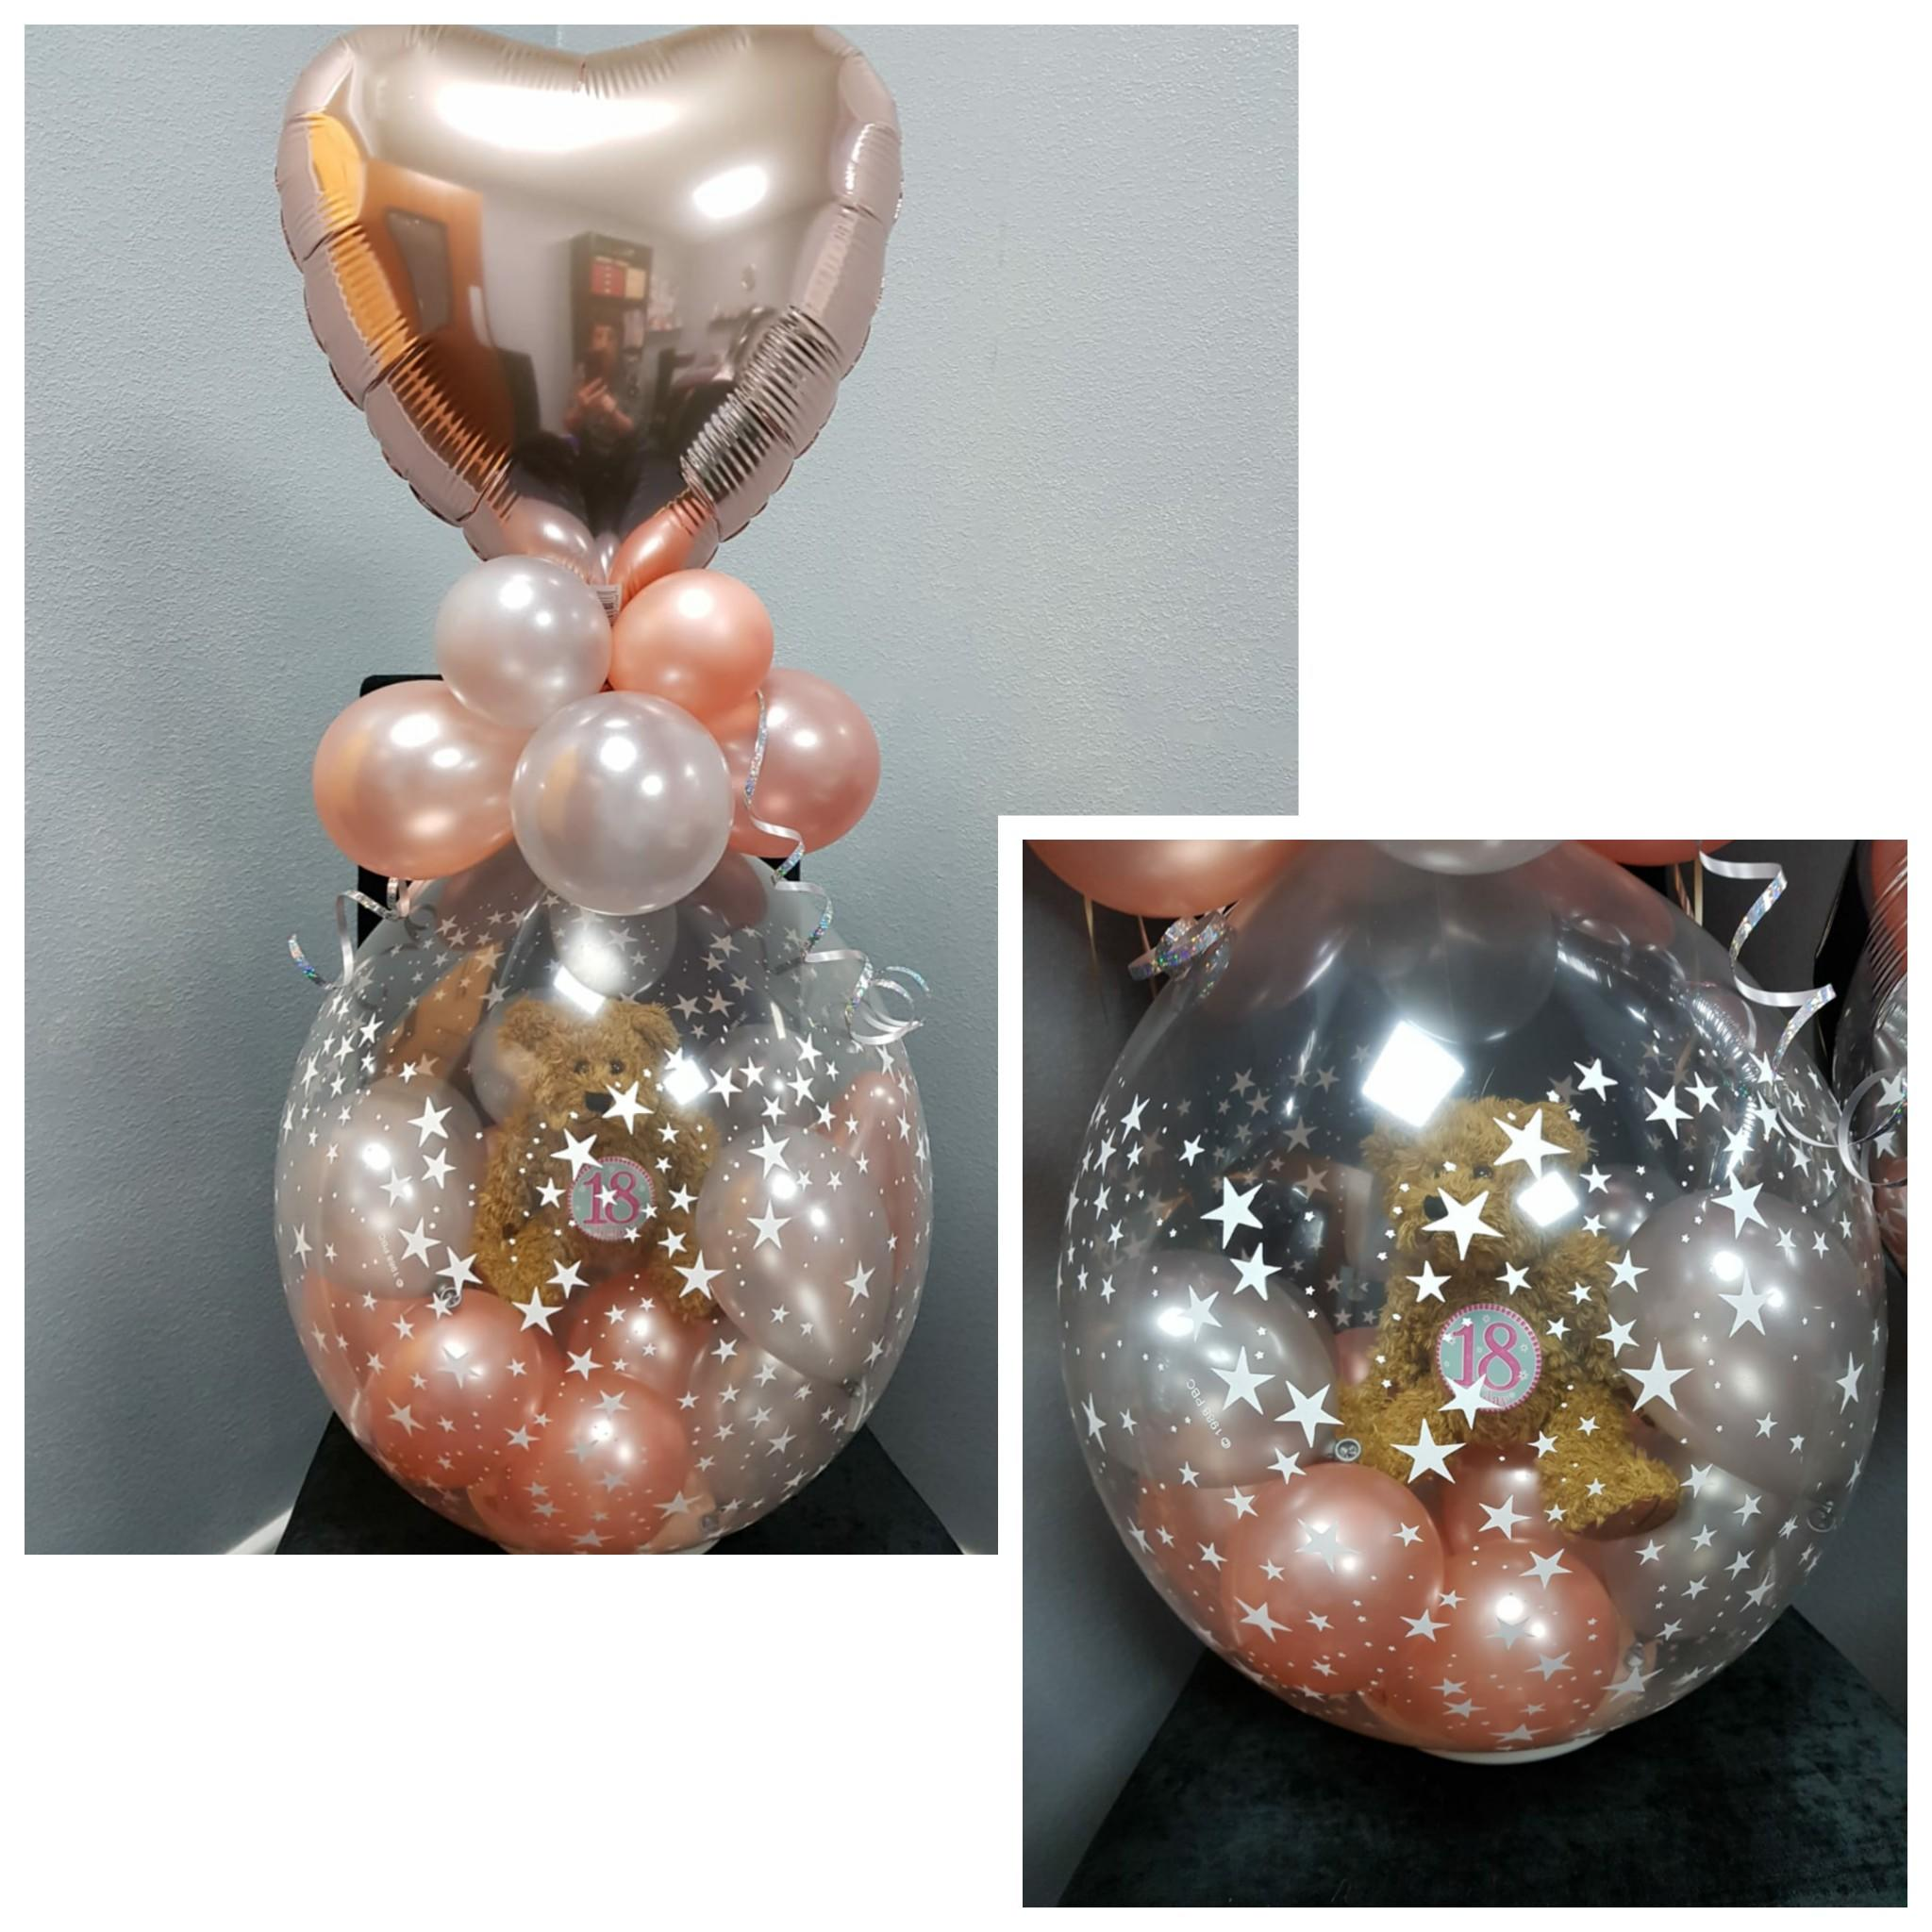 Teddy in a Balloon, Rose Gold